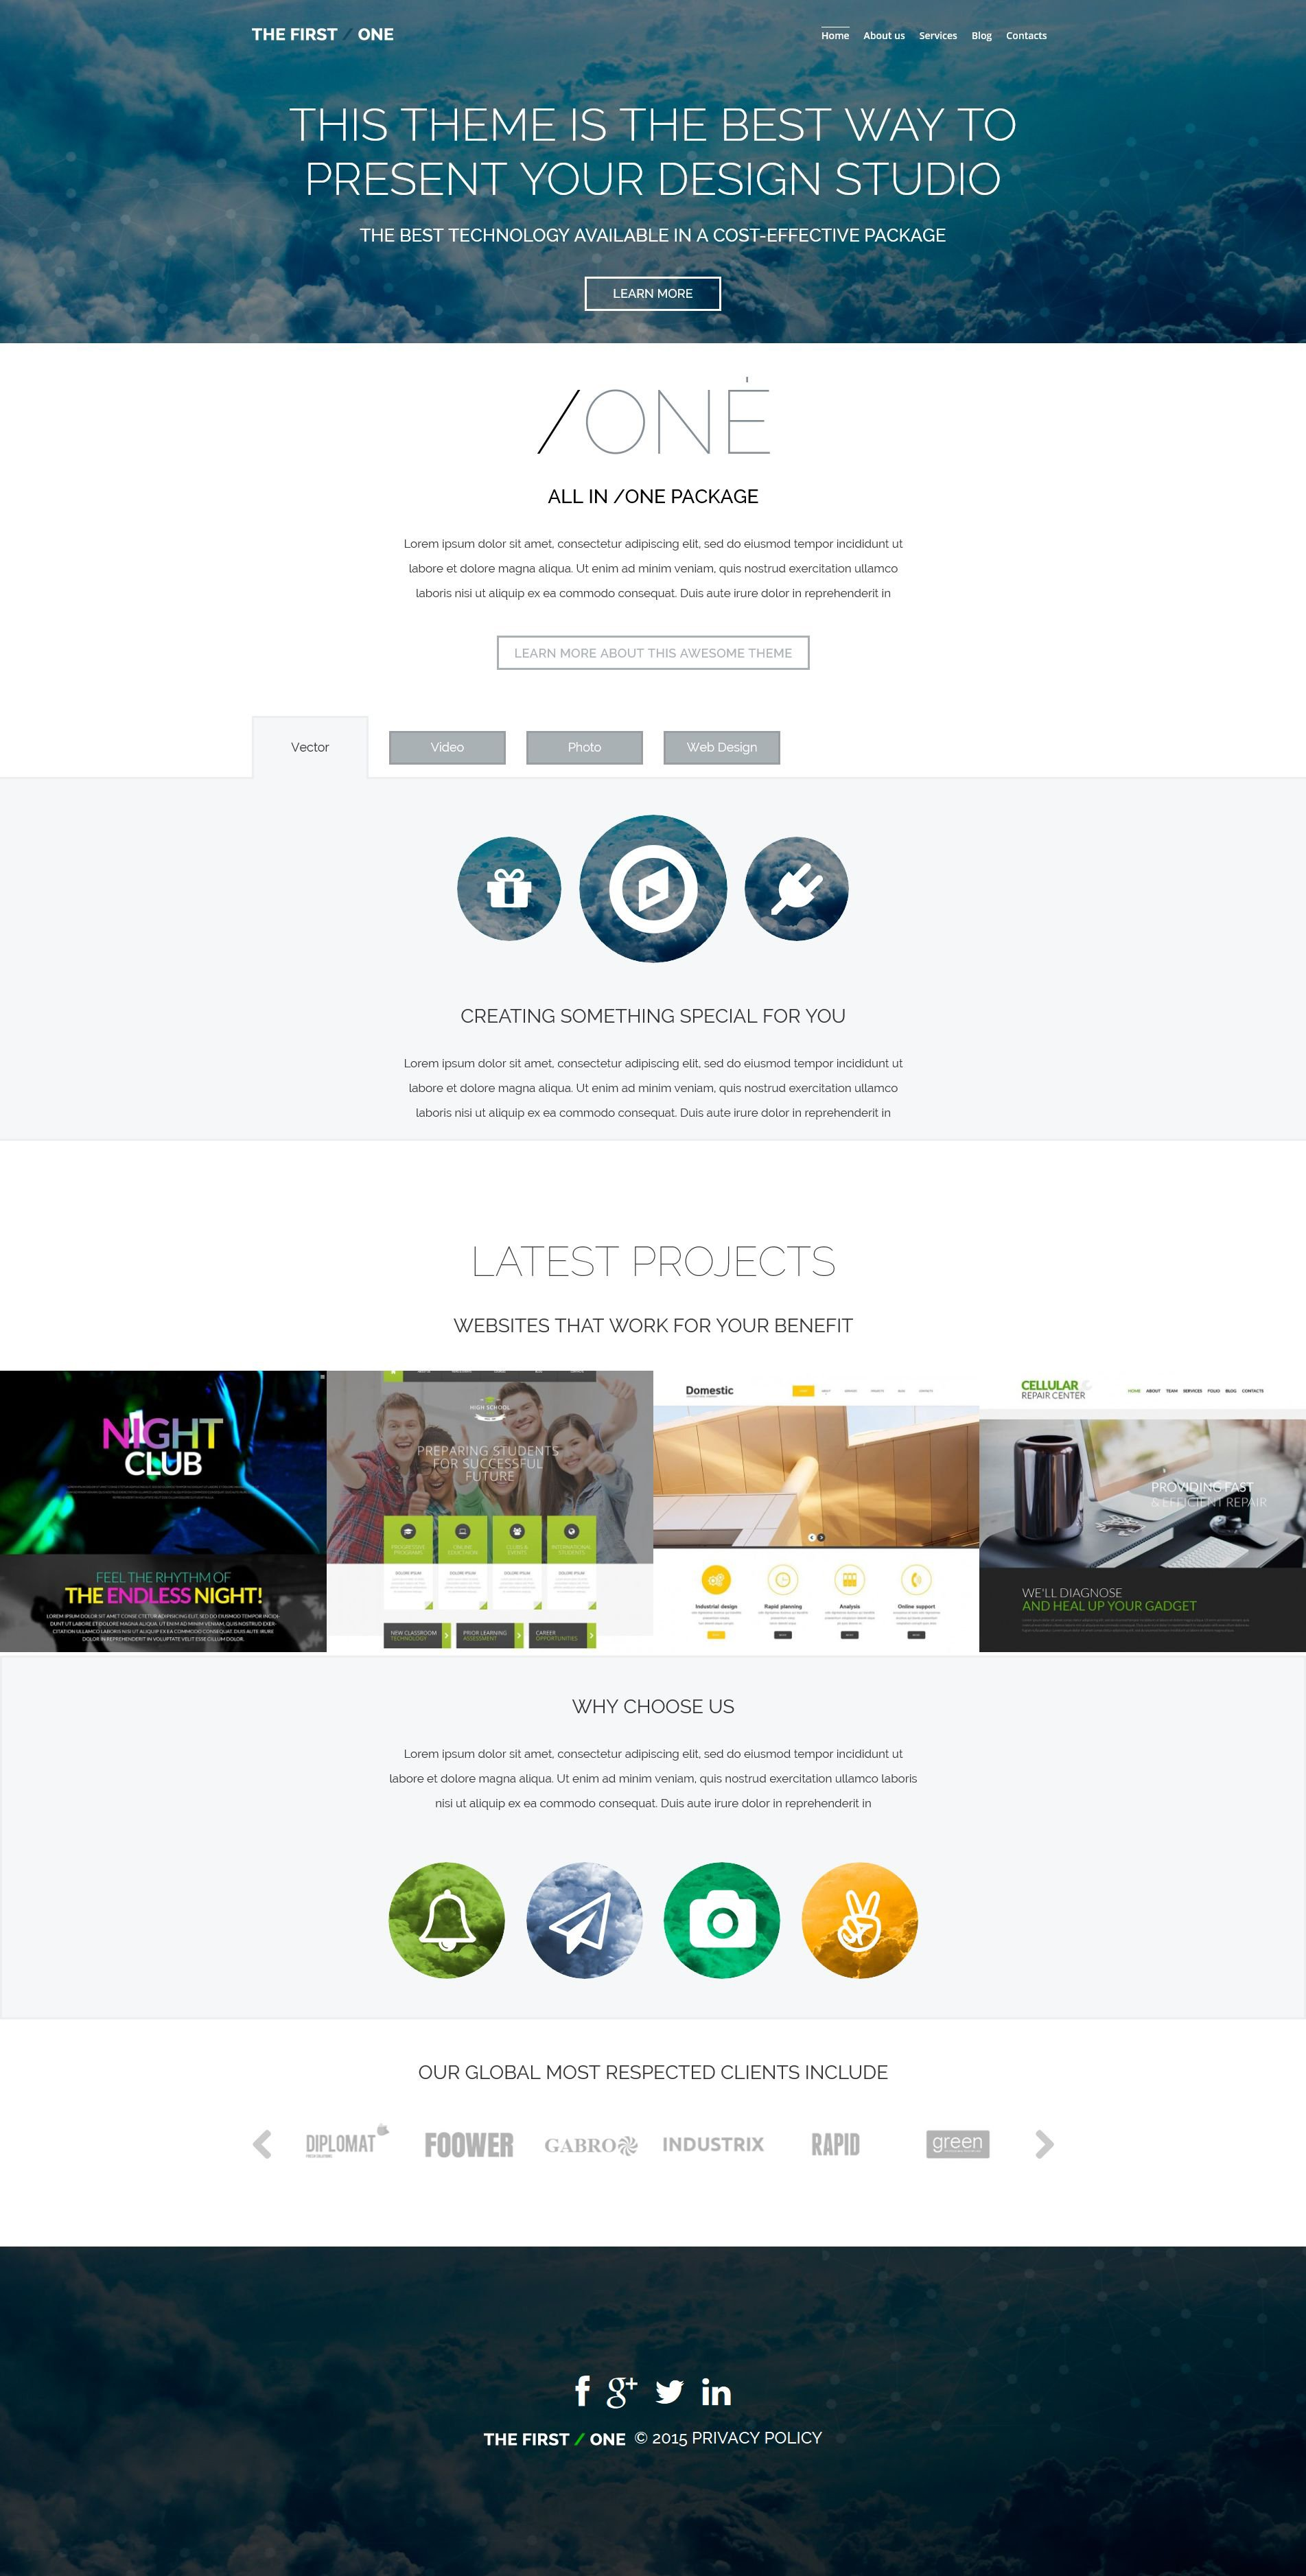 The The First Design Agency Studio WordPress Design 53491, one of the best WordPress themes of its kind (web design, most popular), also known as the first design agency studio WordPress template, creative art gallery WordPress template, artists WordPress template, painting WordPress template, painters WordPress template, web development WordPress template, webmasters WordPress template, designers WordPress template, internet WordPress template, www WordPress template, sites WordPress template, web design WordPress template, webpage WordPress template, personal portfolio and related with the first design agency studio, creative art gallery, artists, painting, painters, web development, webmasters, designers, internet, www, sites, web design, webpage, personal portfolio, etc.